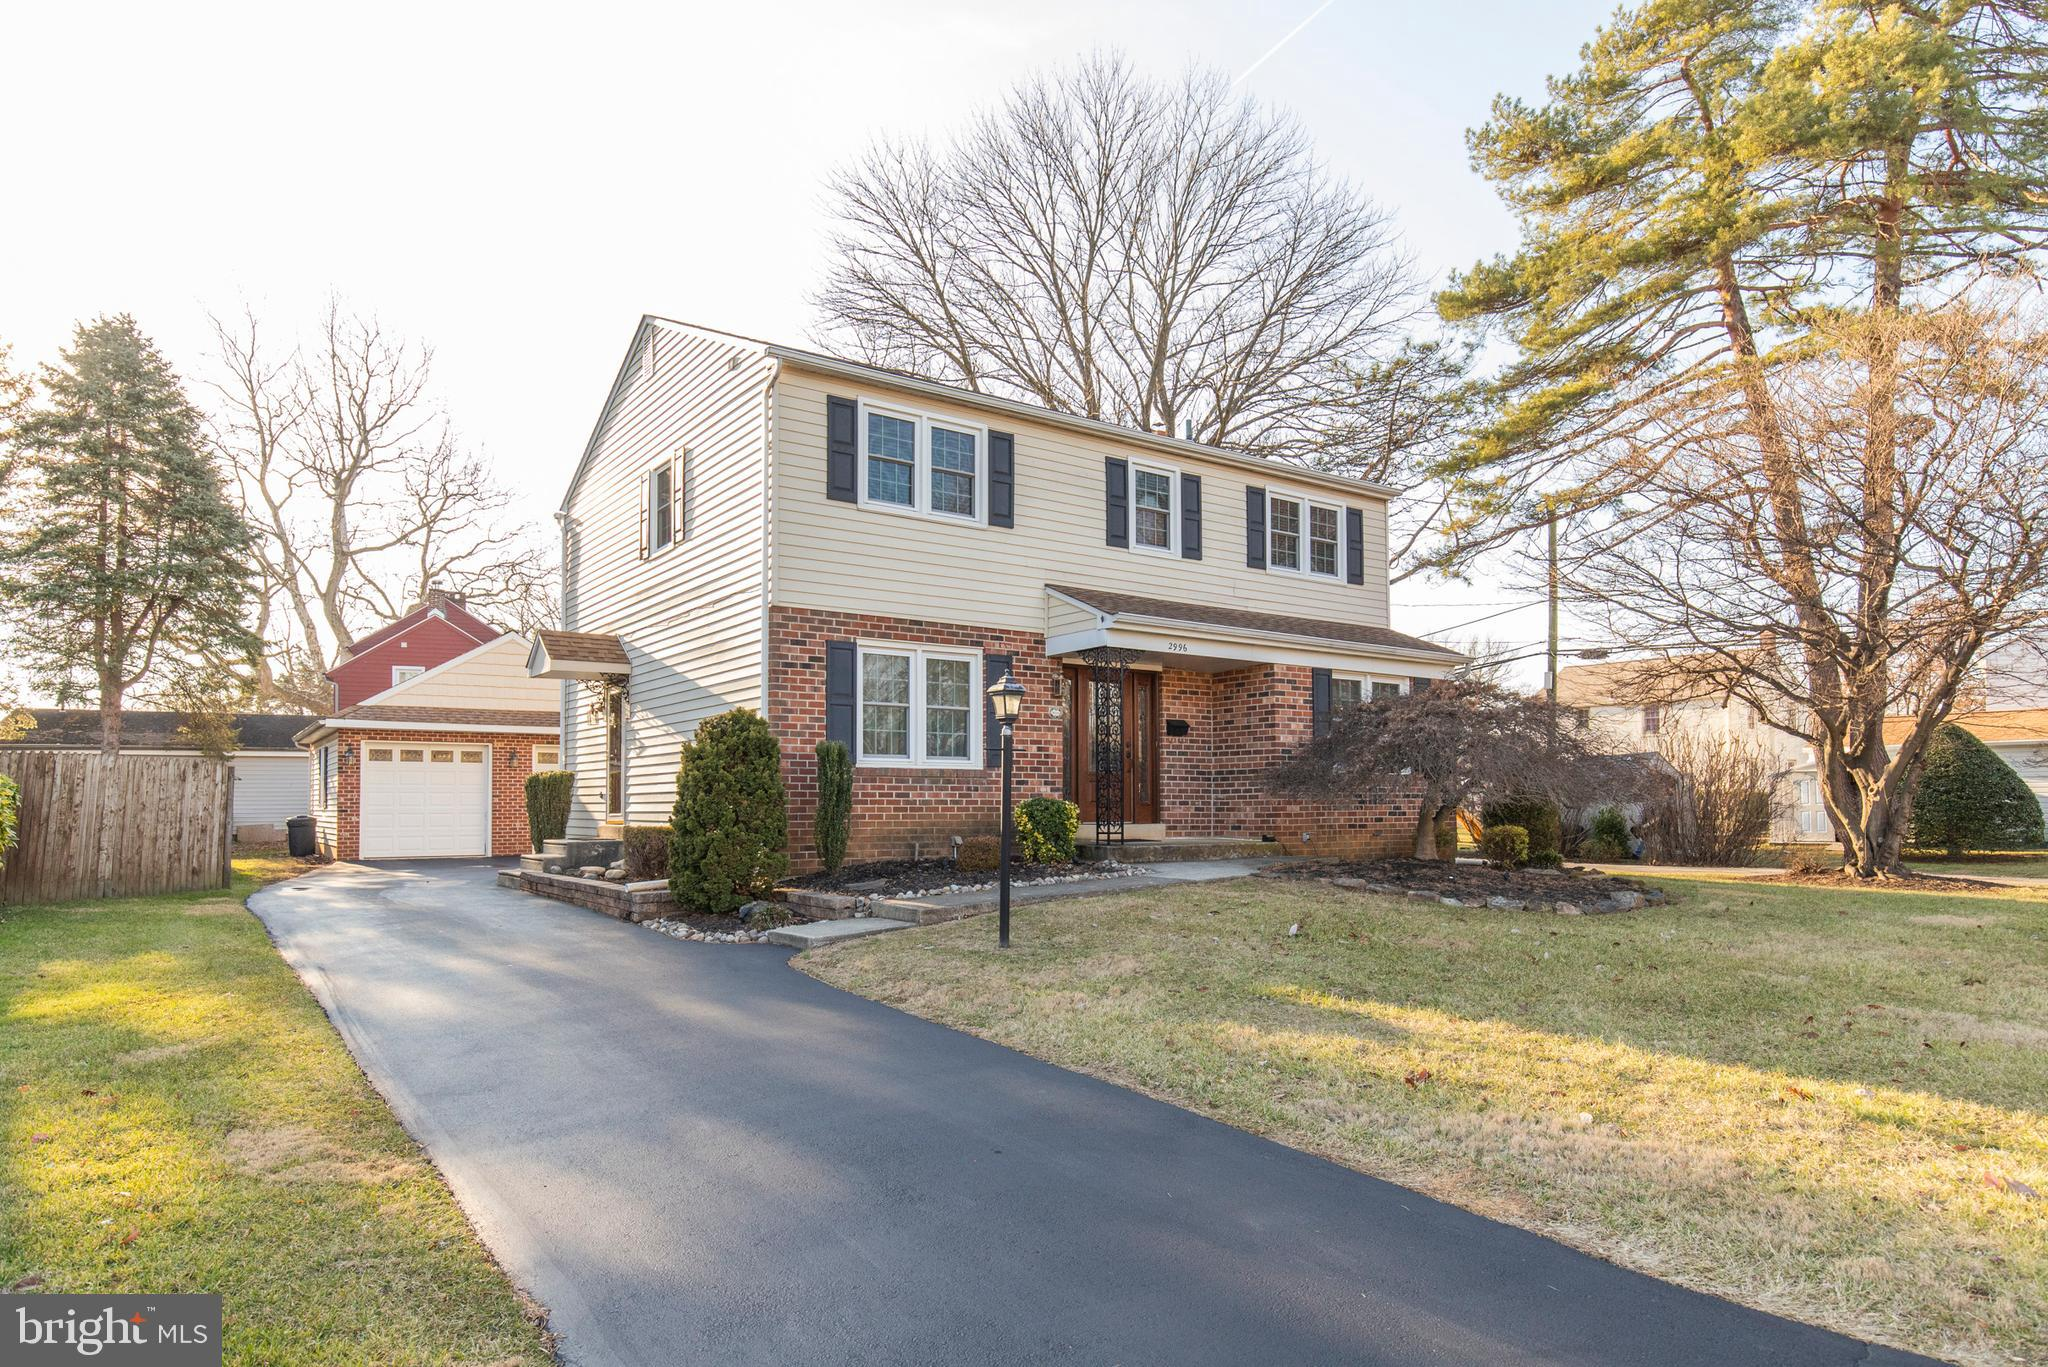 2996 EASTBURN ROAD, BROOMALL, PA 19008